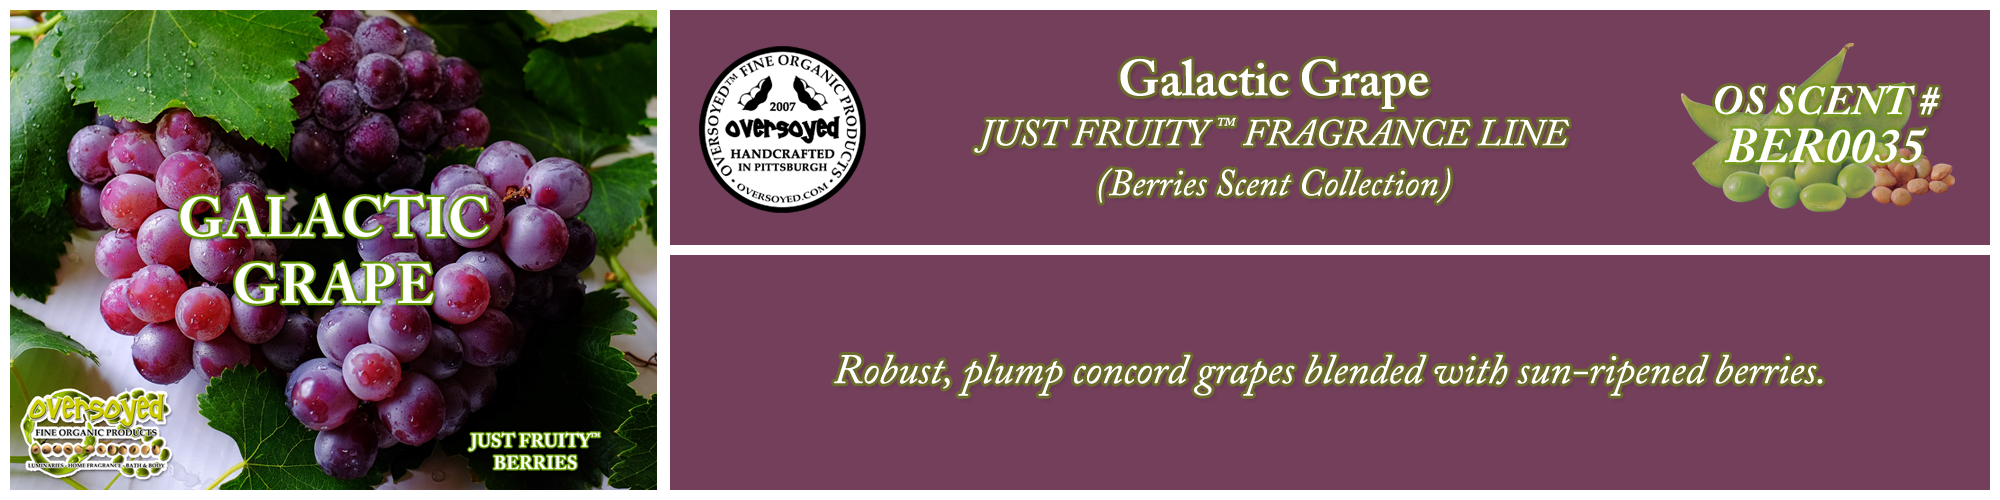 Galactic Grape Handcrafted Products Collection